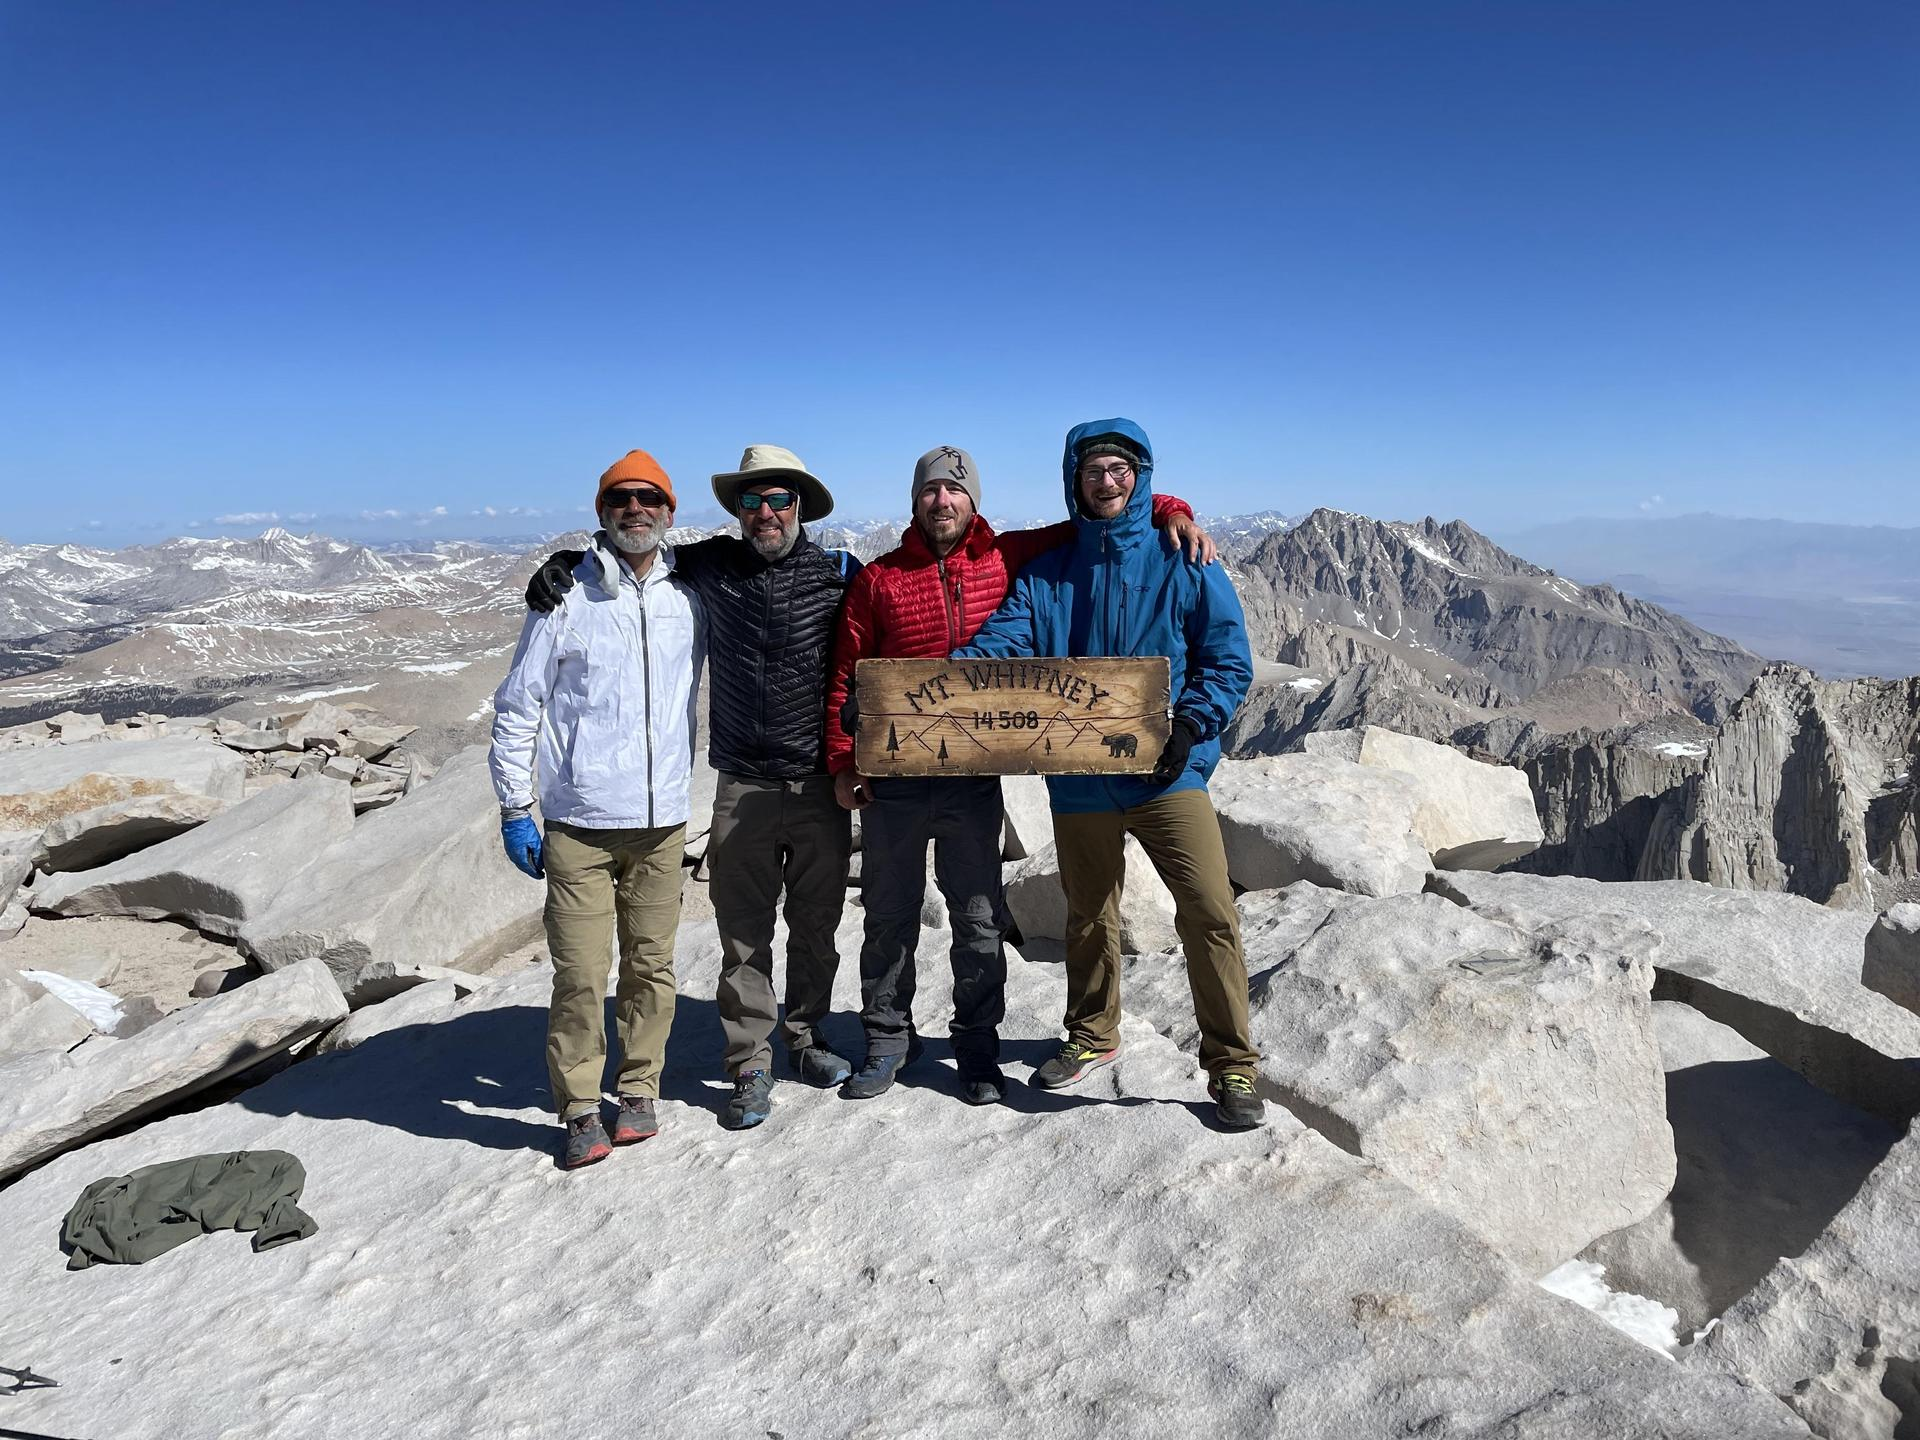 May 15, on Mt. Whitney